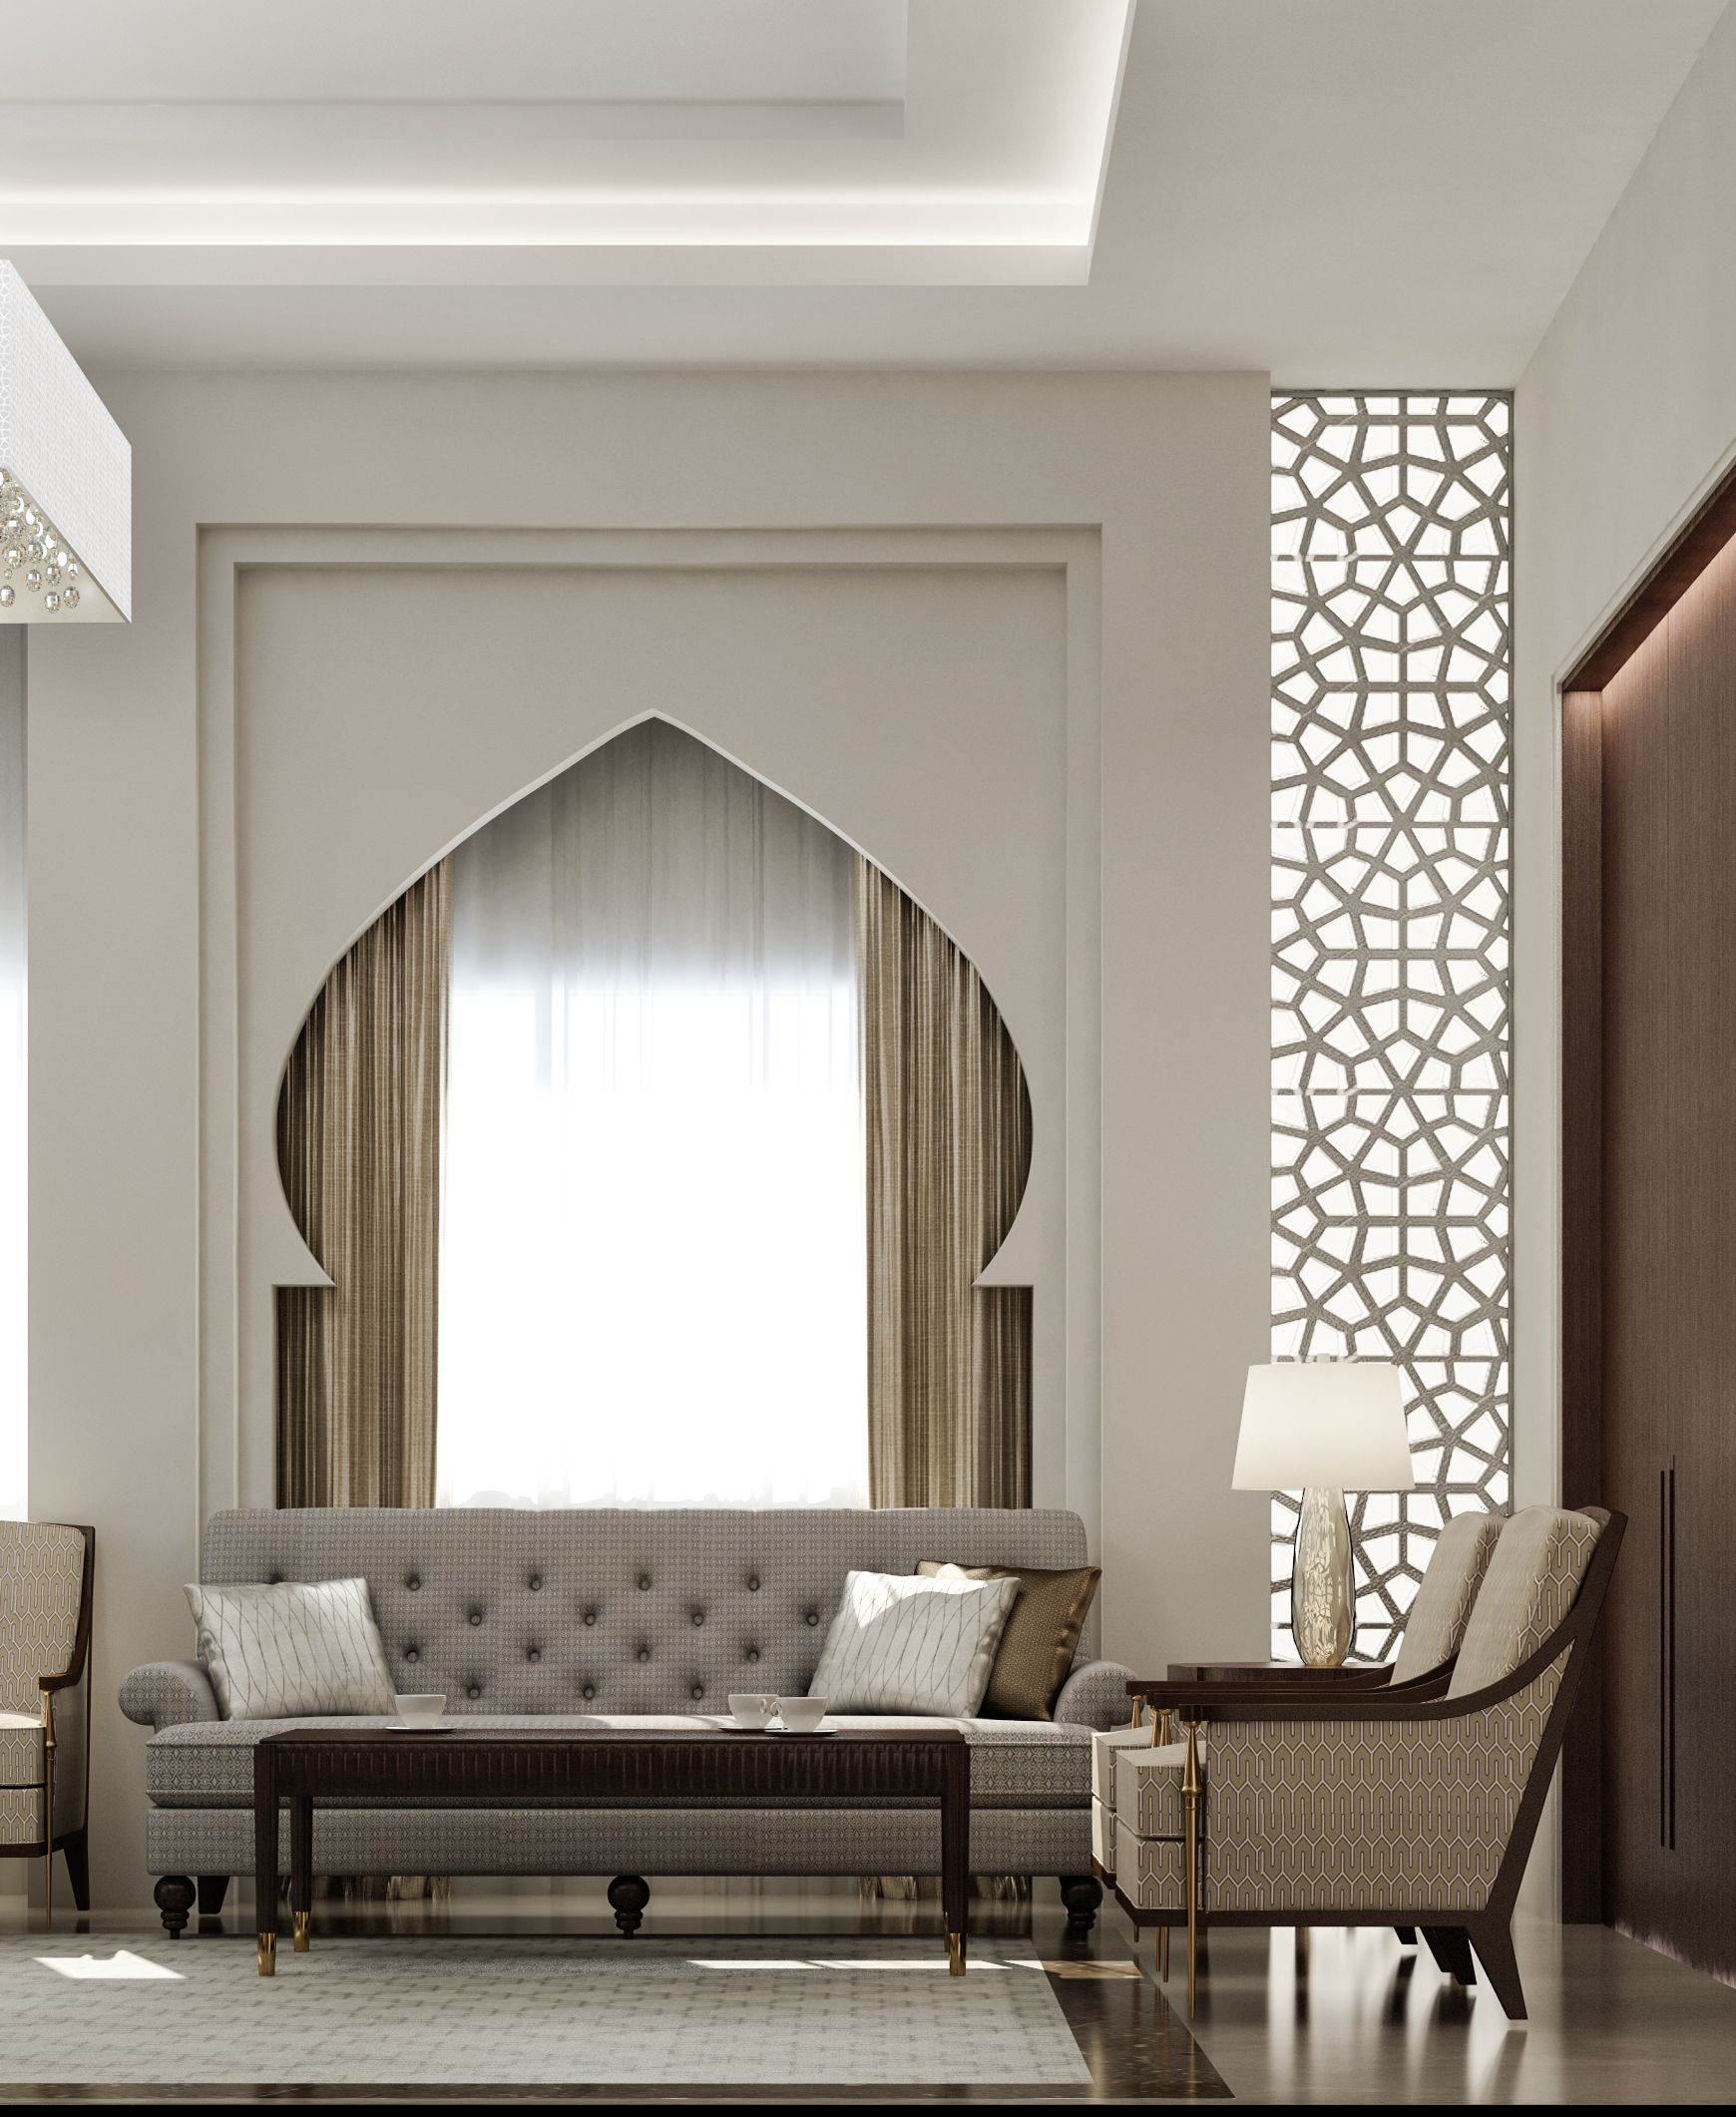 living room window sill decorating ideas wall mirrors gorgeous!!! if i ever build my own house would love to ...